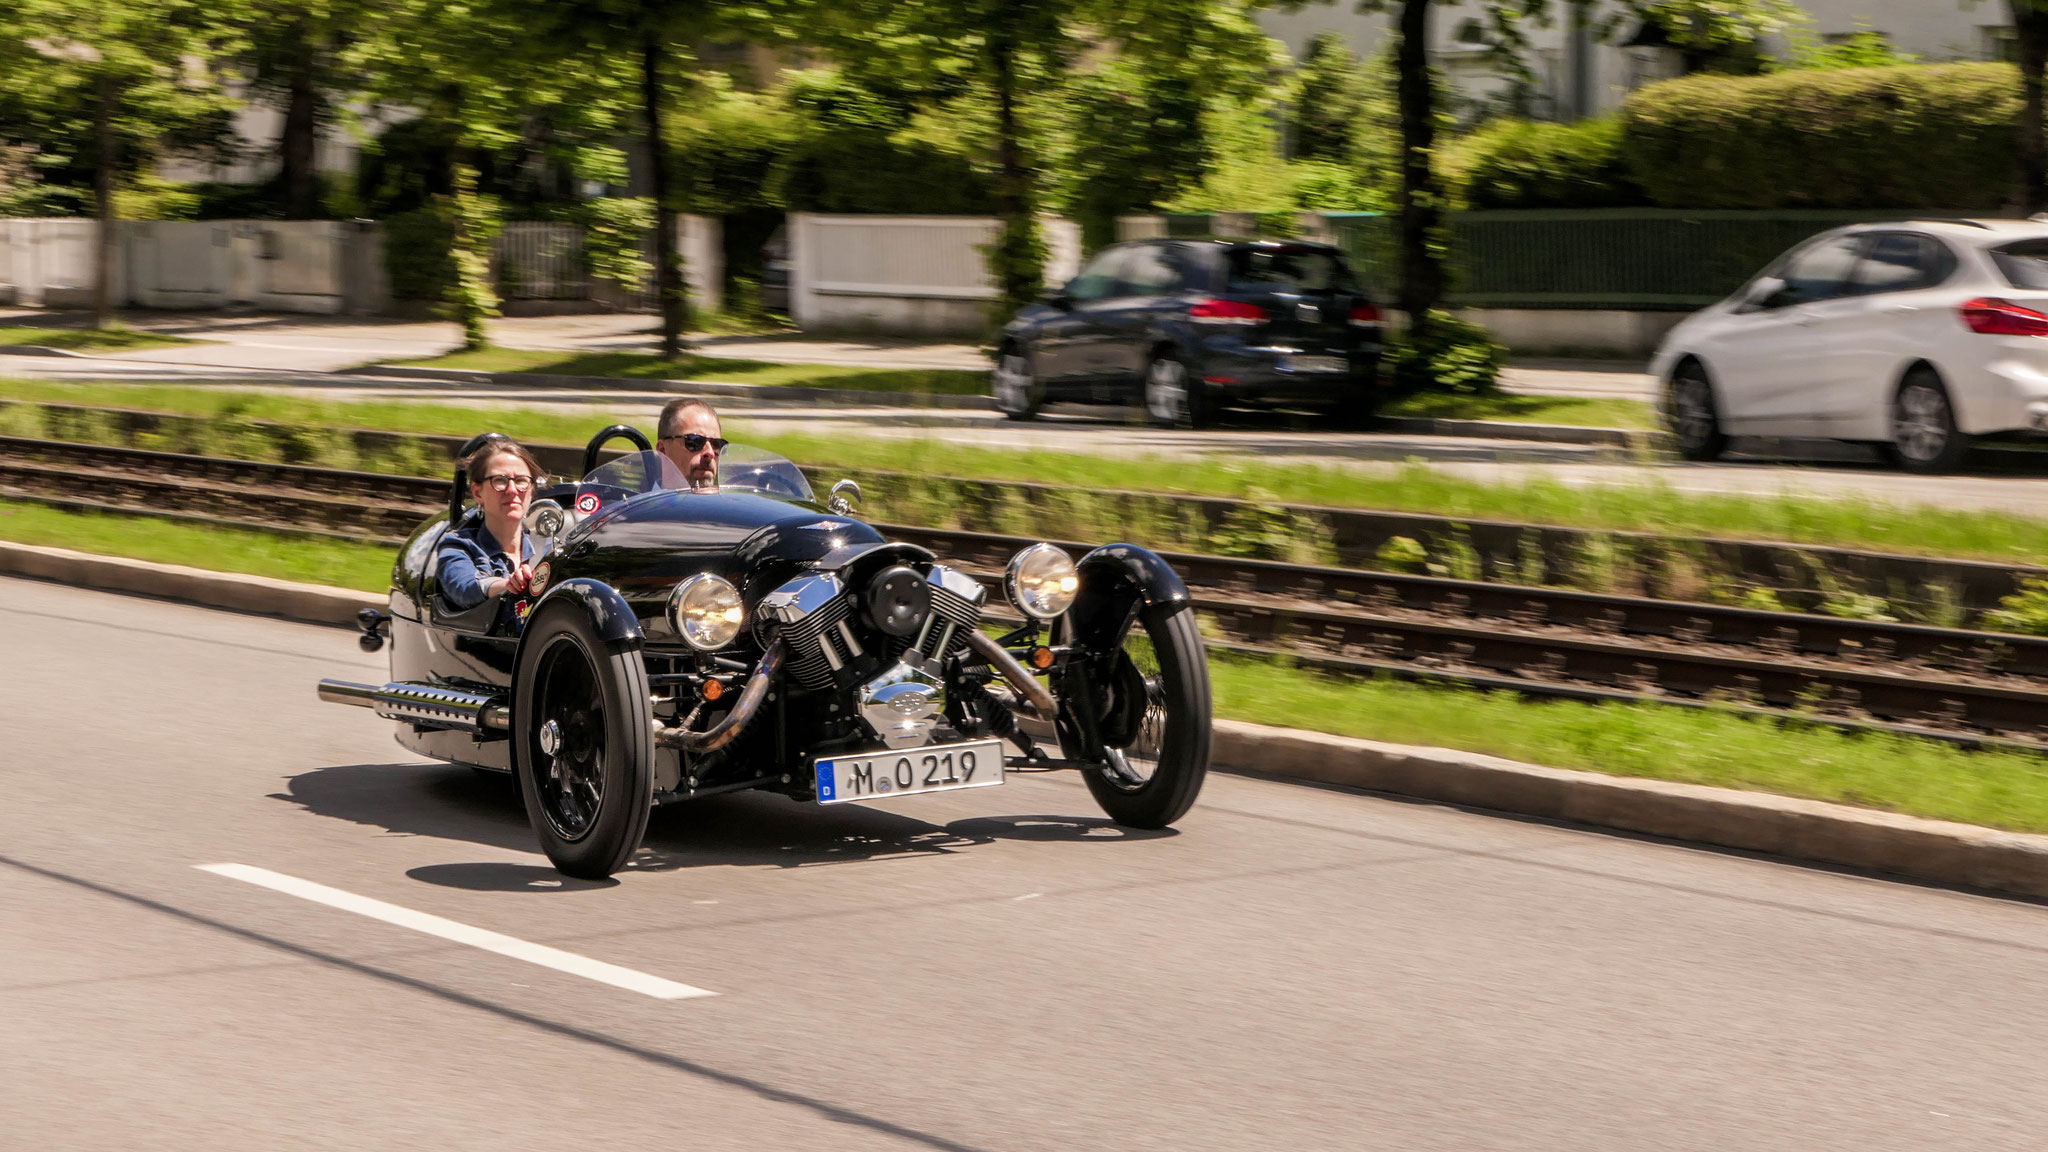 Morgan Threewheeler - M-O-219